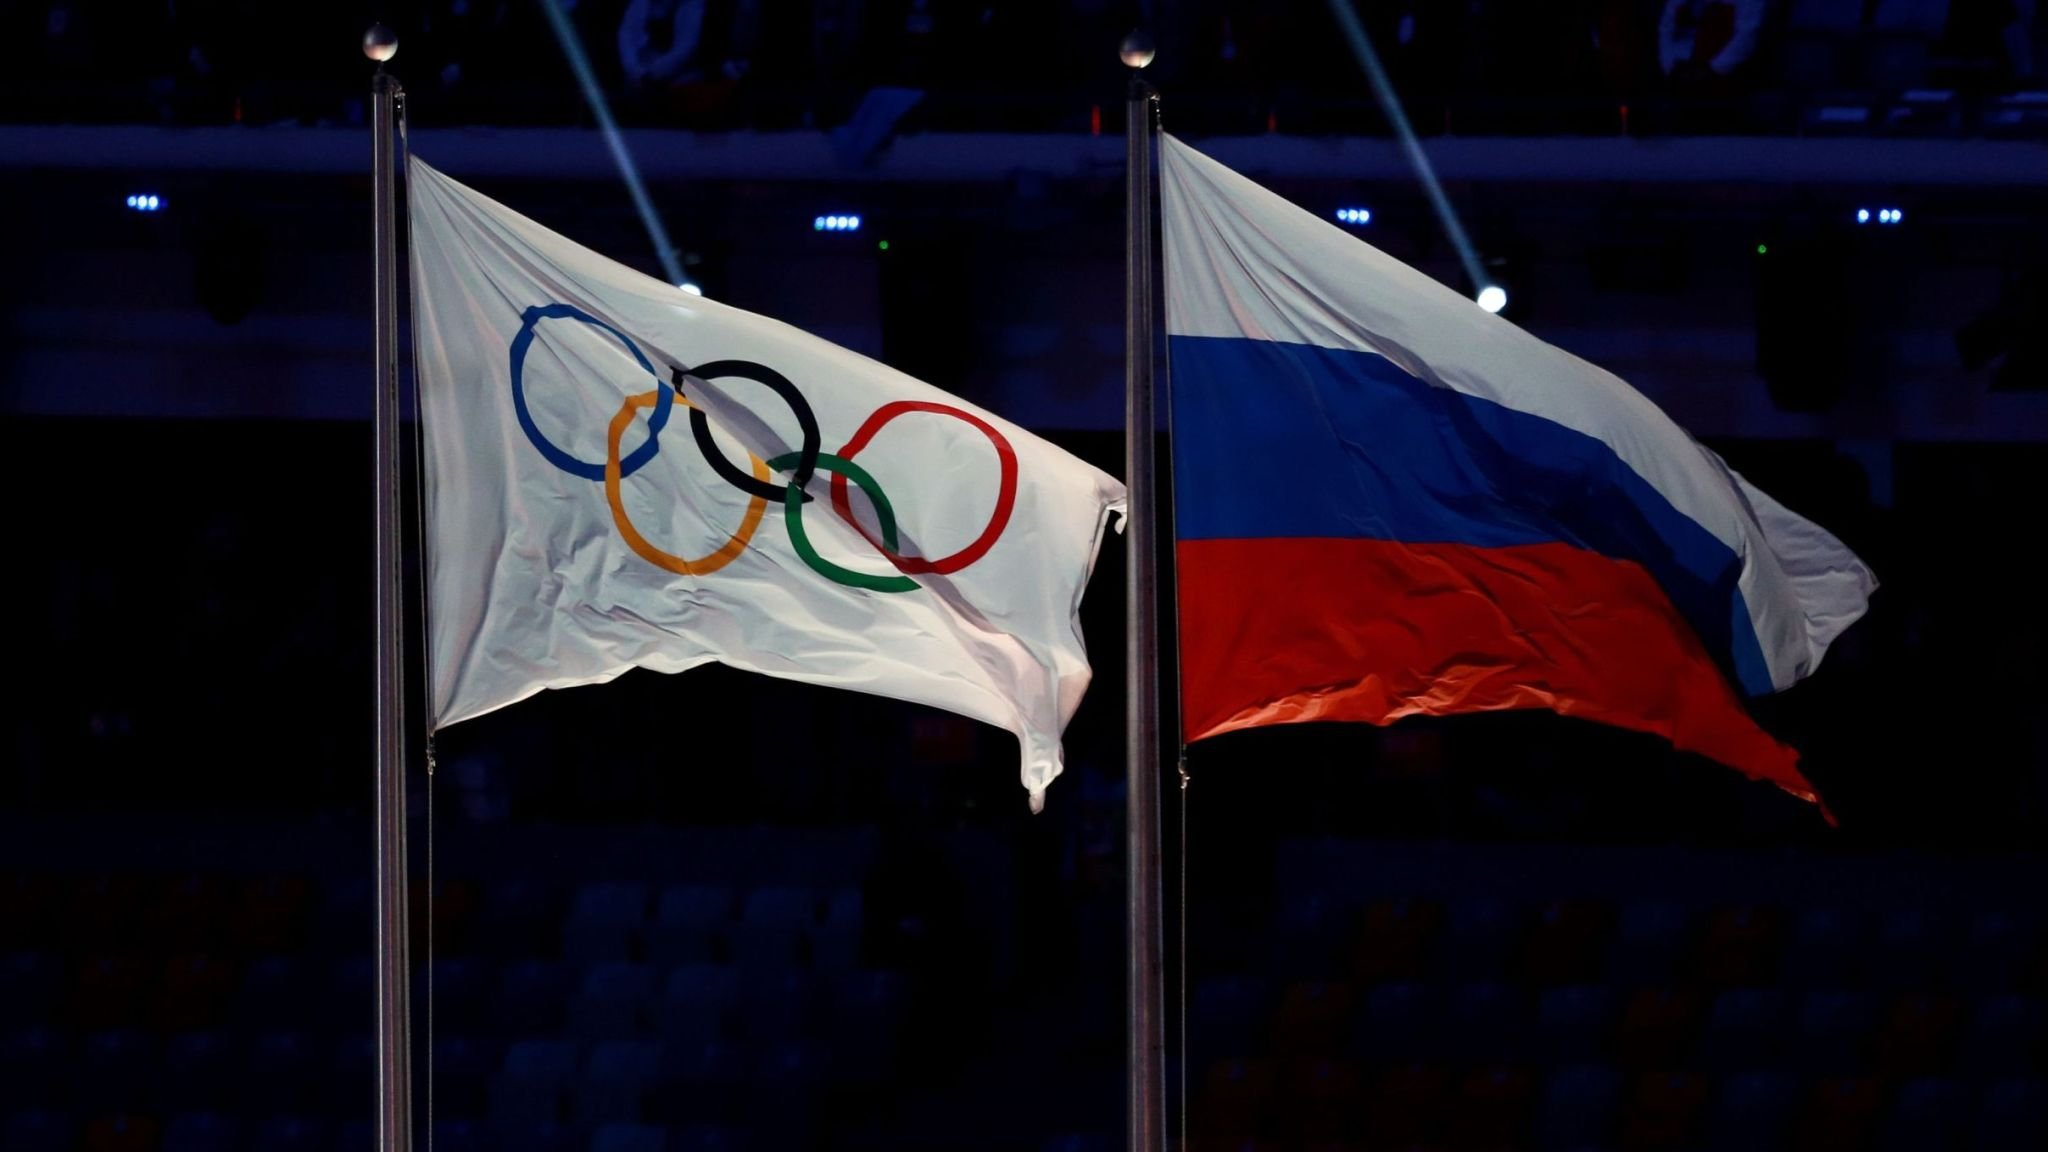 Rio Olympics 2016: Russia not given blanket ban by IOC